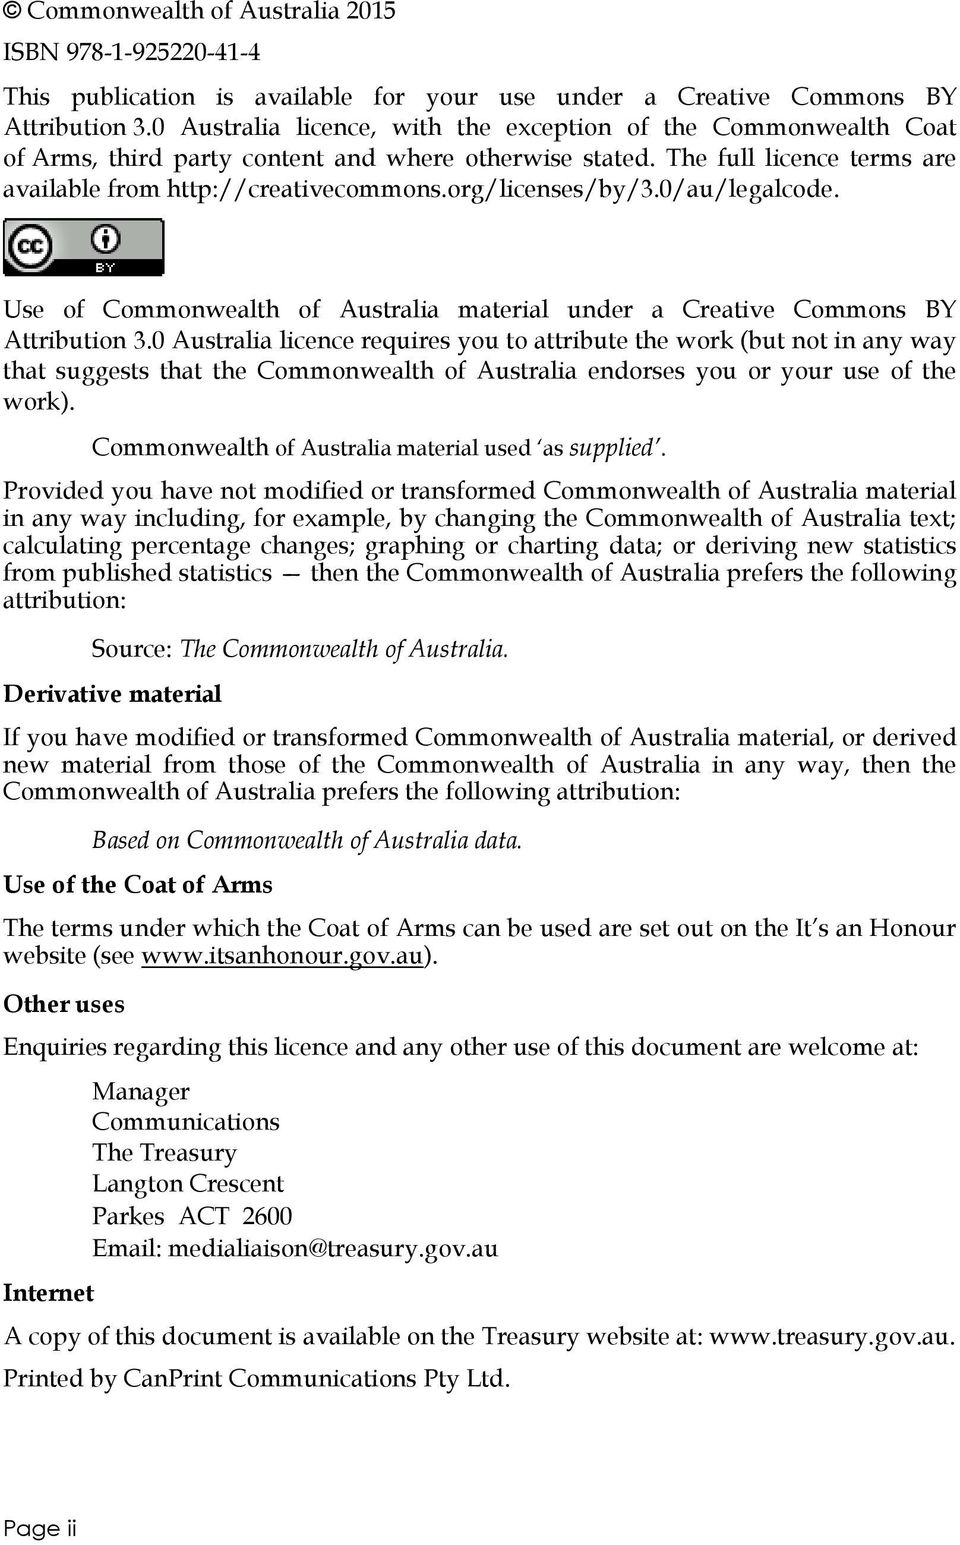 org/licenses/by/3./au/legalcode. Use of Commonwealth of Australia material under a Creative Commons BY Attribution 3.